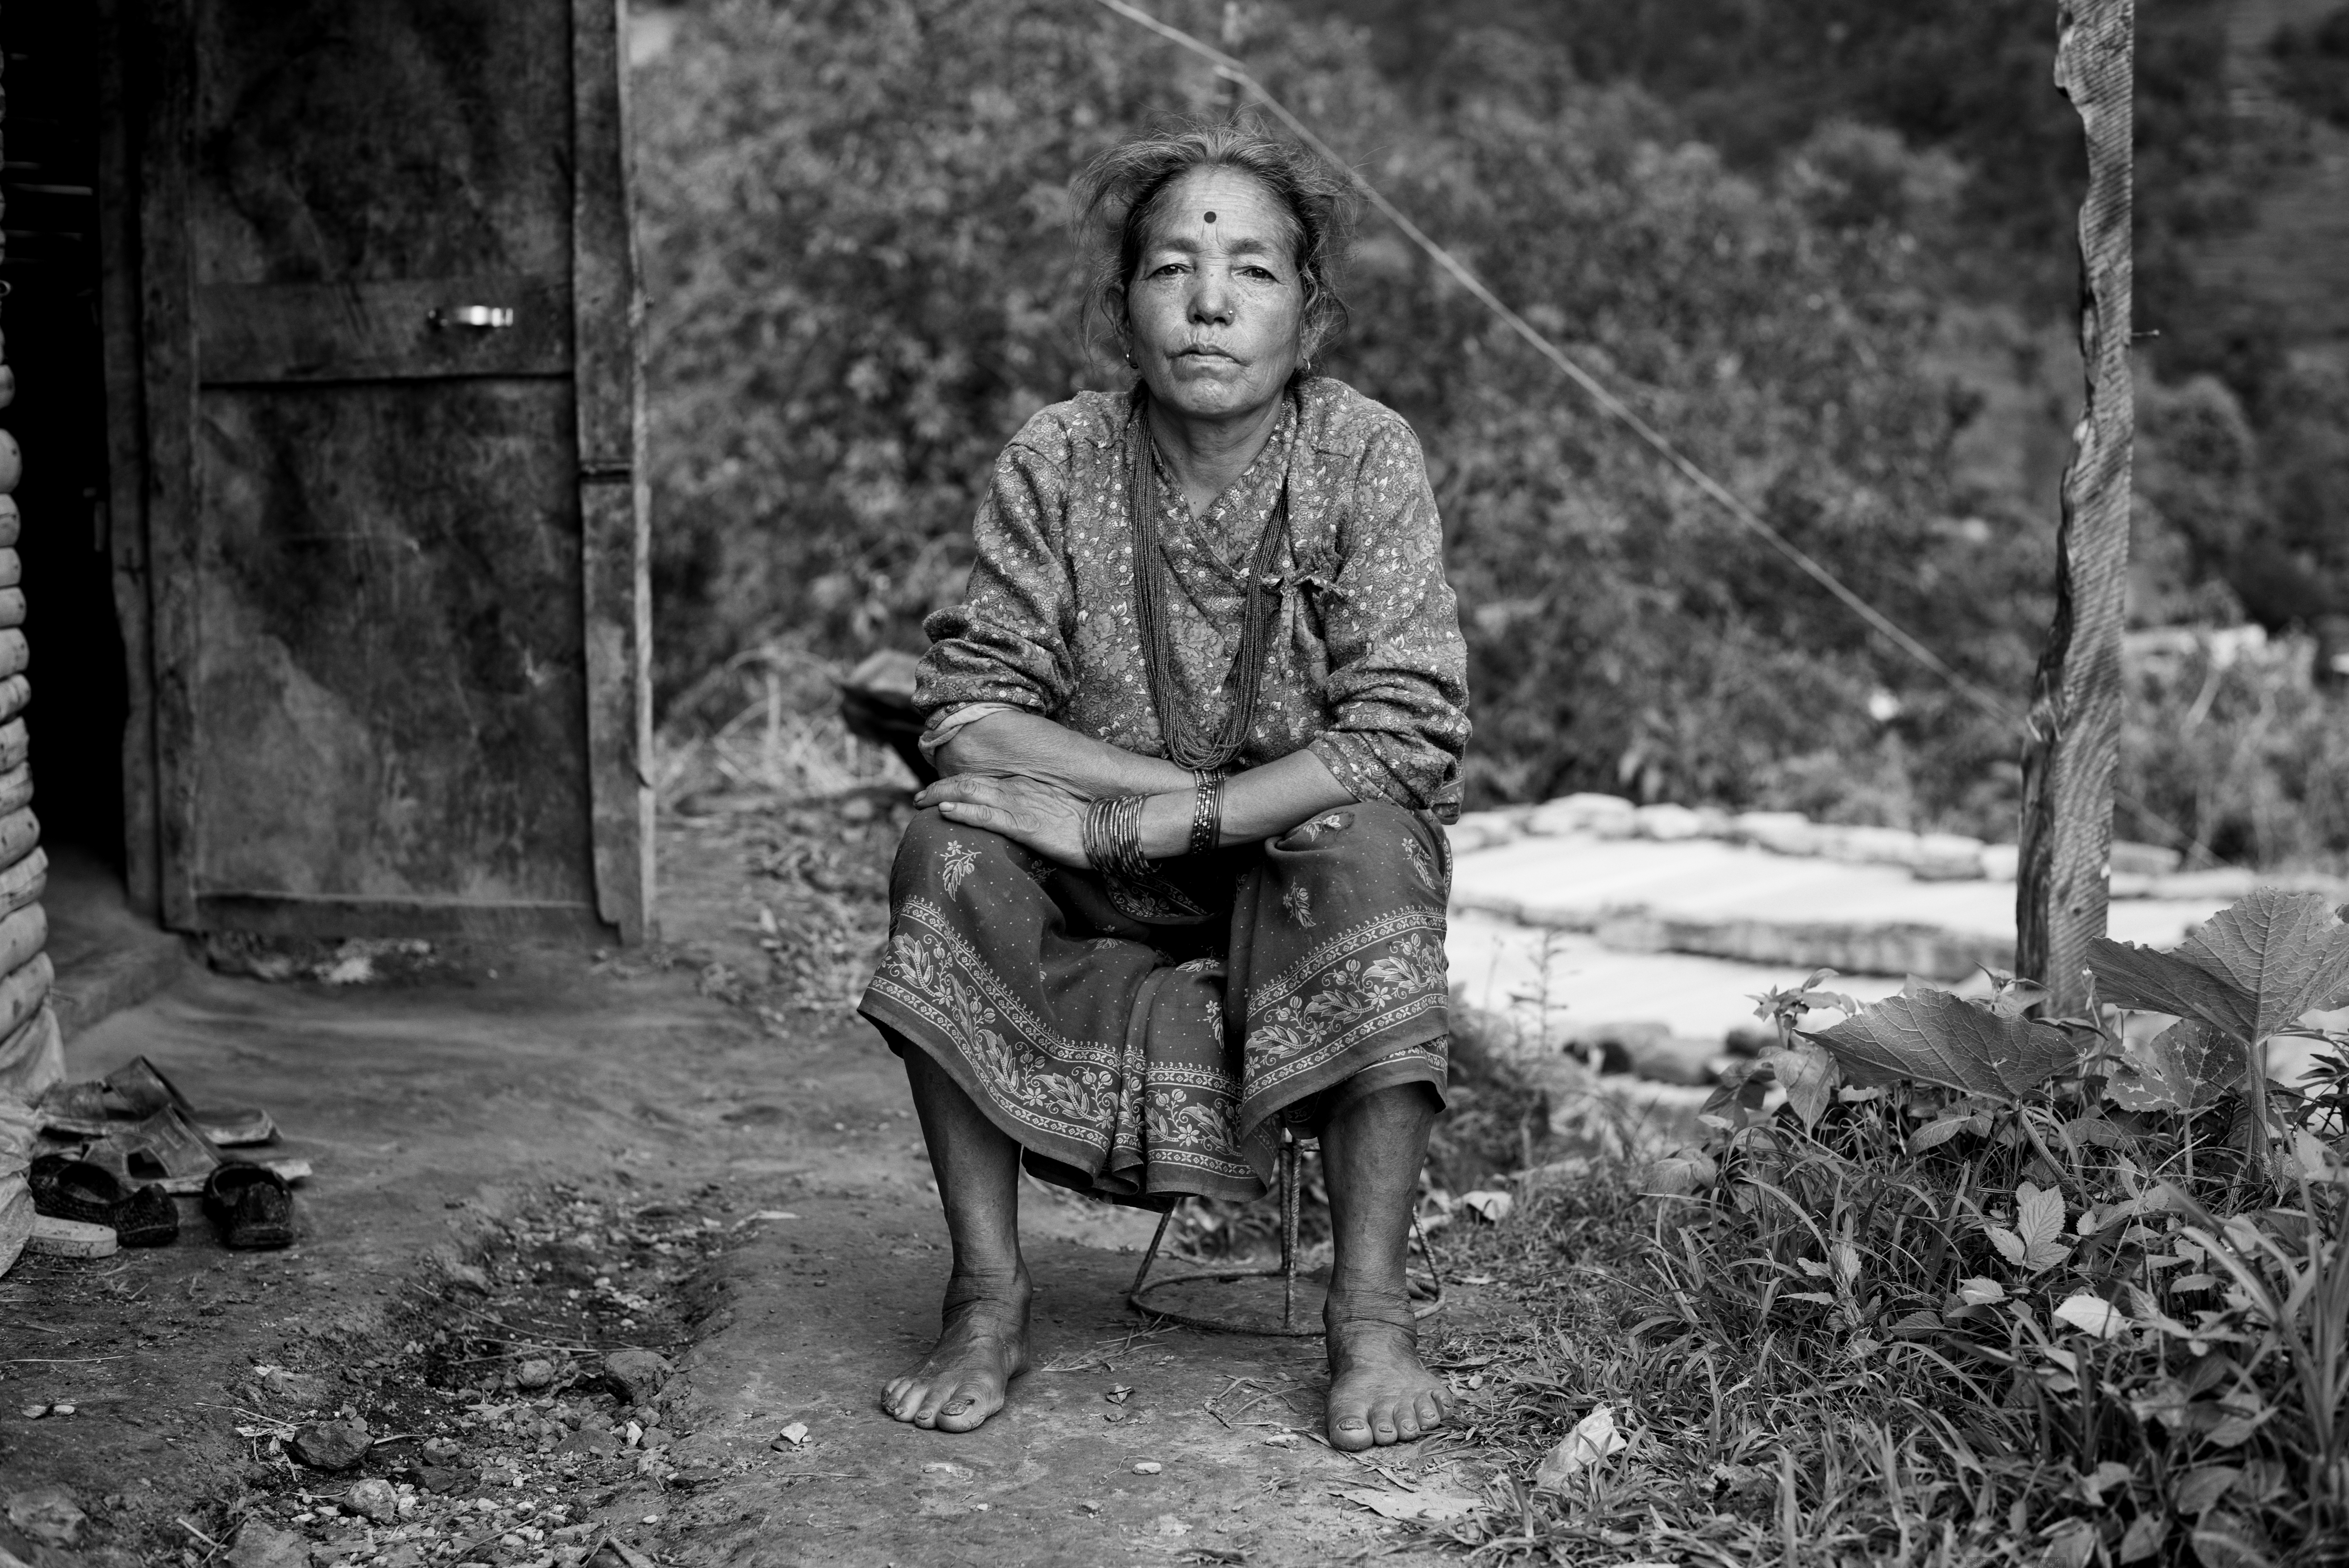 This widow from Chandragiri has no land documents and feels insecure as an illegal settler - Credit: Martin Grahovski/Oxfam